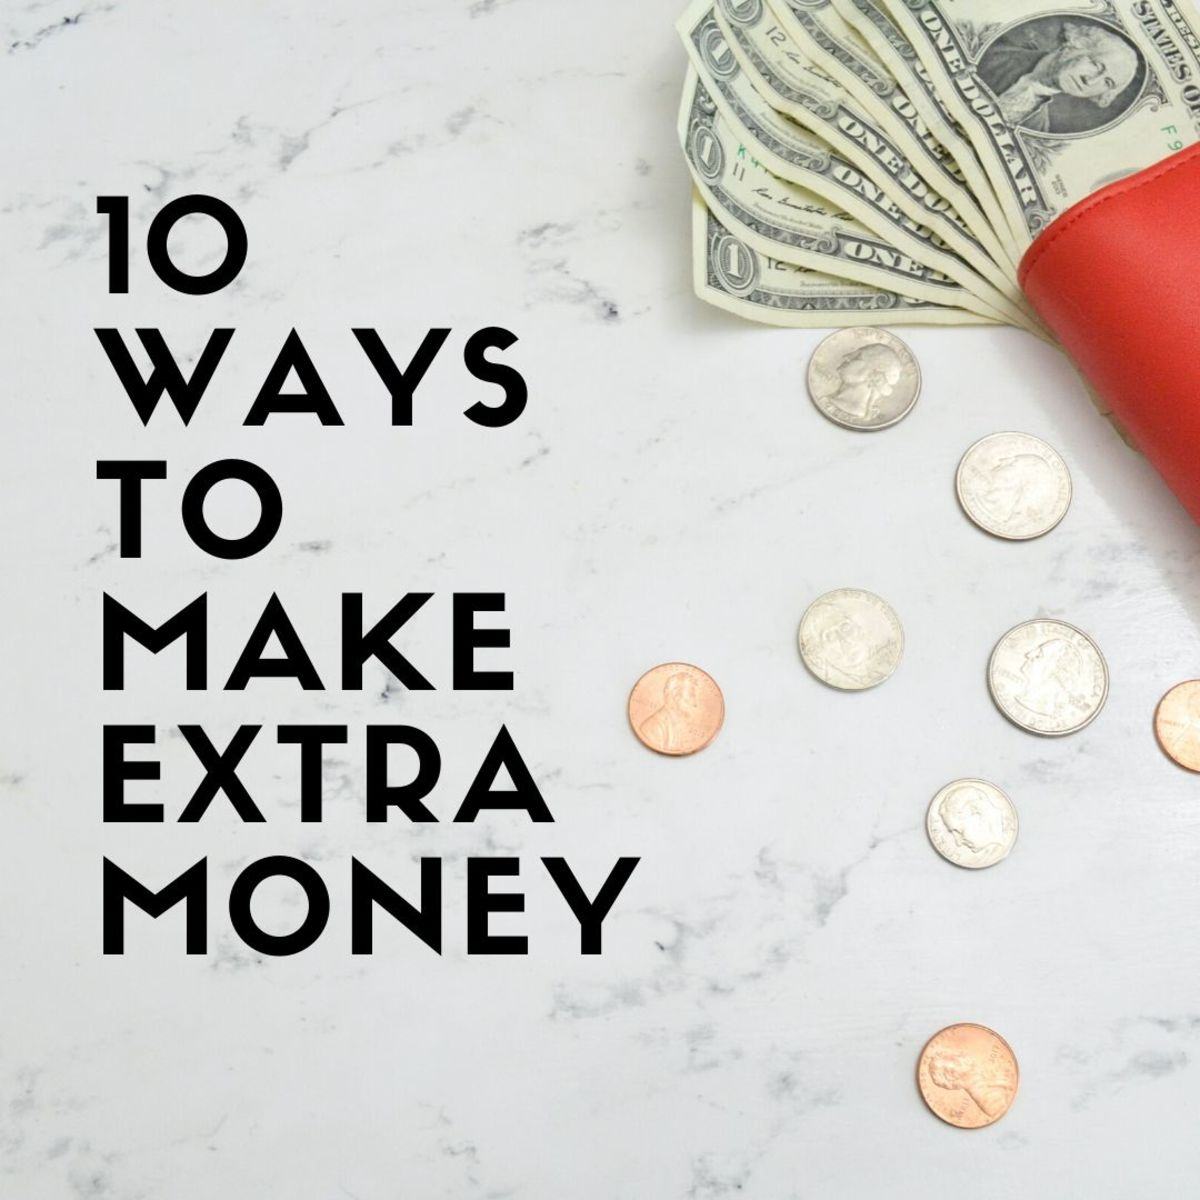 Learn 10 easy ways to make extra money outside of your 9–5 job.